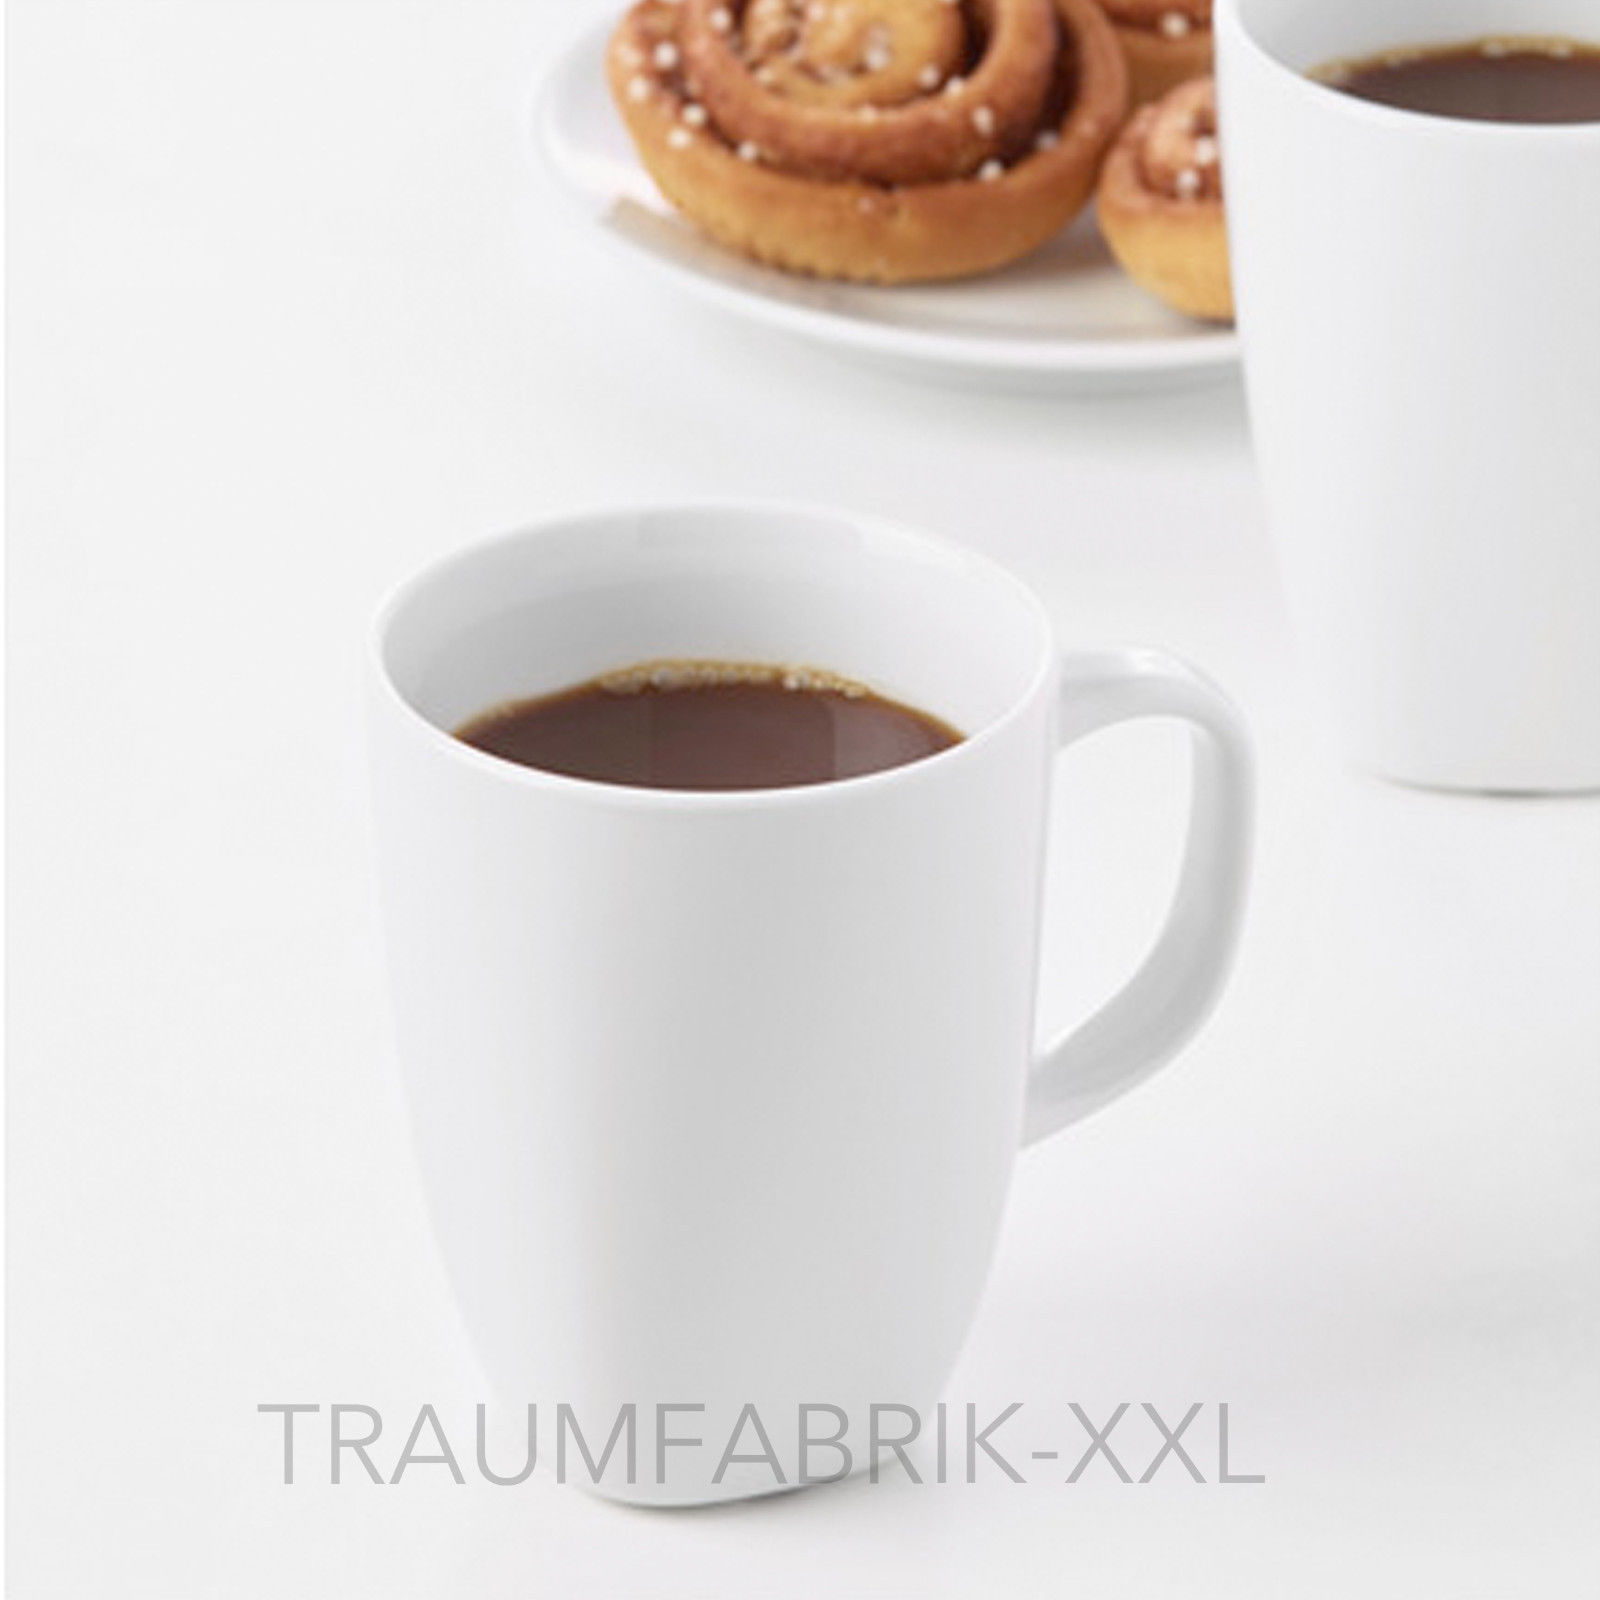 ikea v rdera kaffeebecher wei kaffee tasse becher kaffeepott tassen 300ml neu traumfabrik xxl. Black Bedroom Furniture Sets. Home Design Ideas